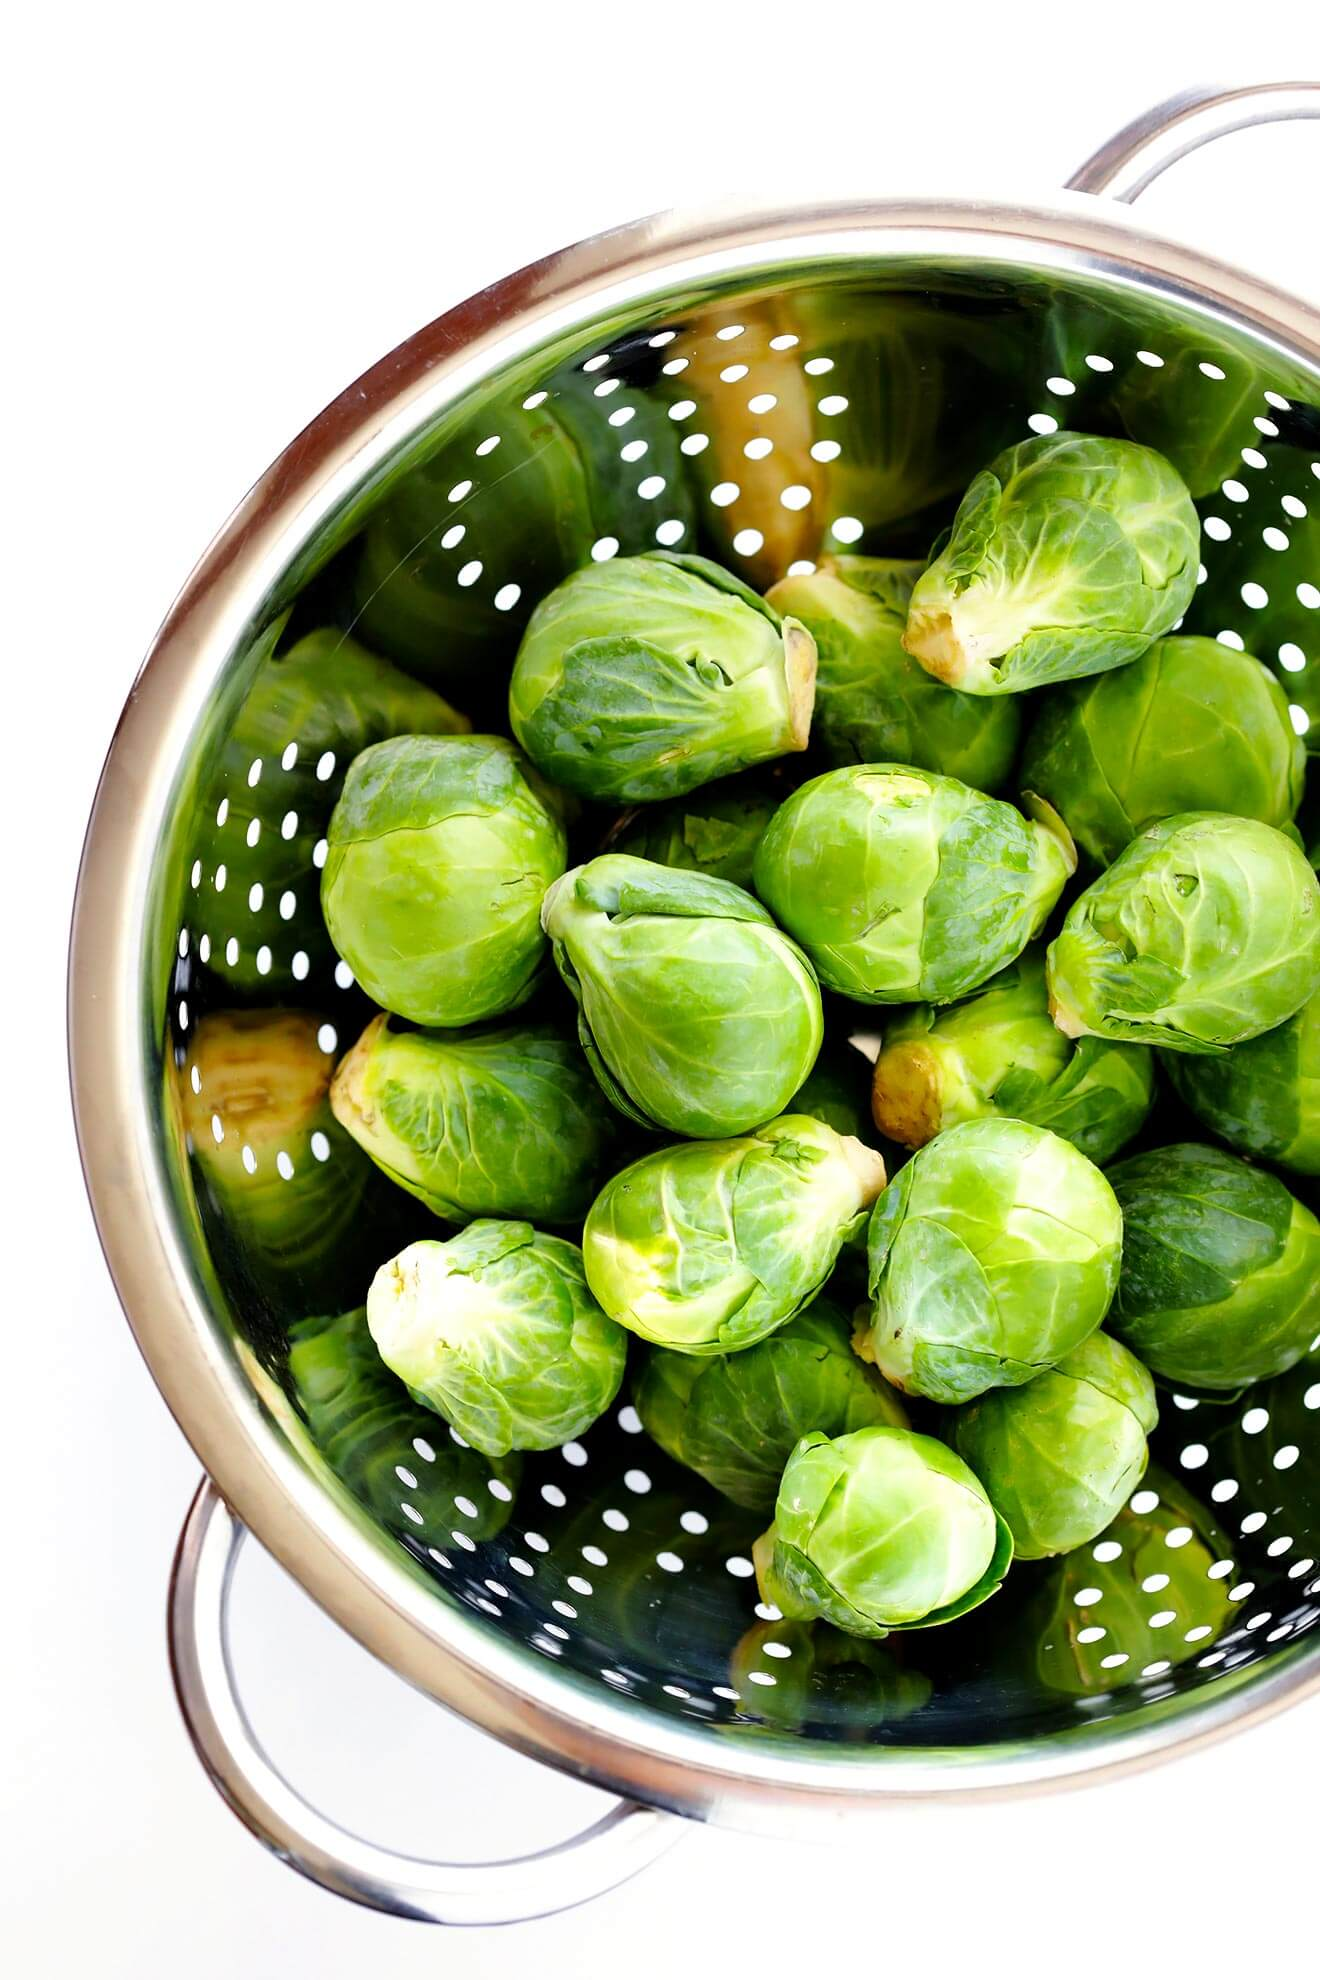 Learn how to cut Brussels sprouts 3 ways with this quick video tutorial! | gimmesomeoven.com